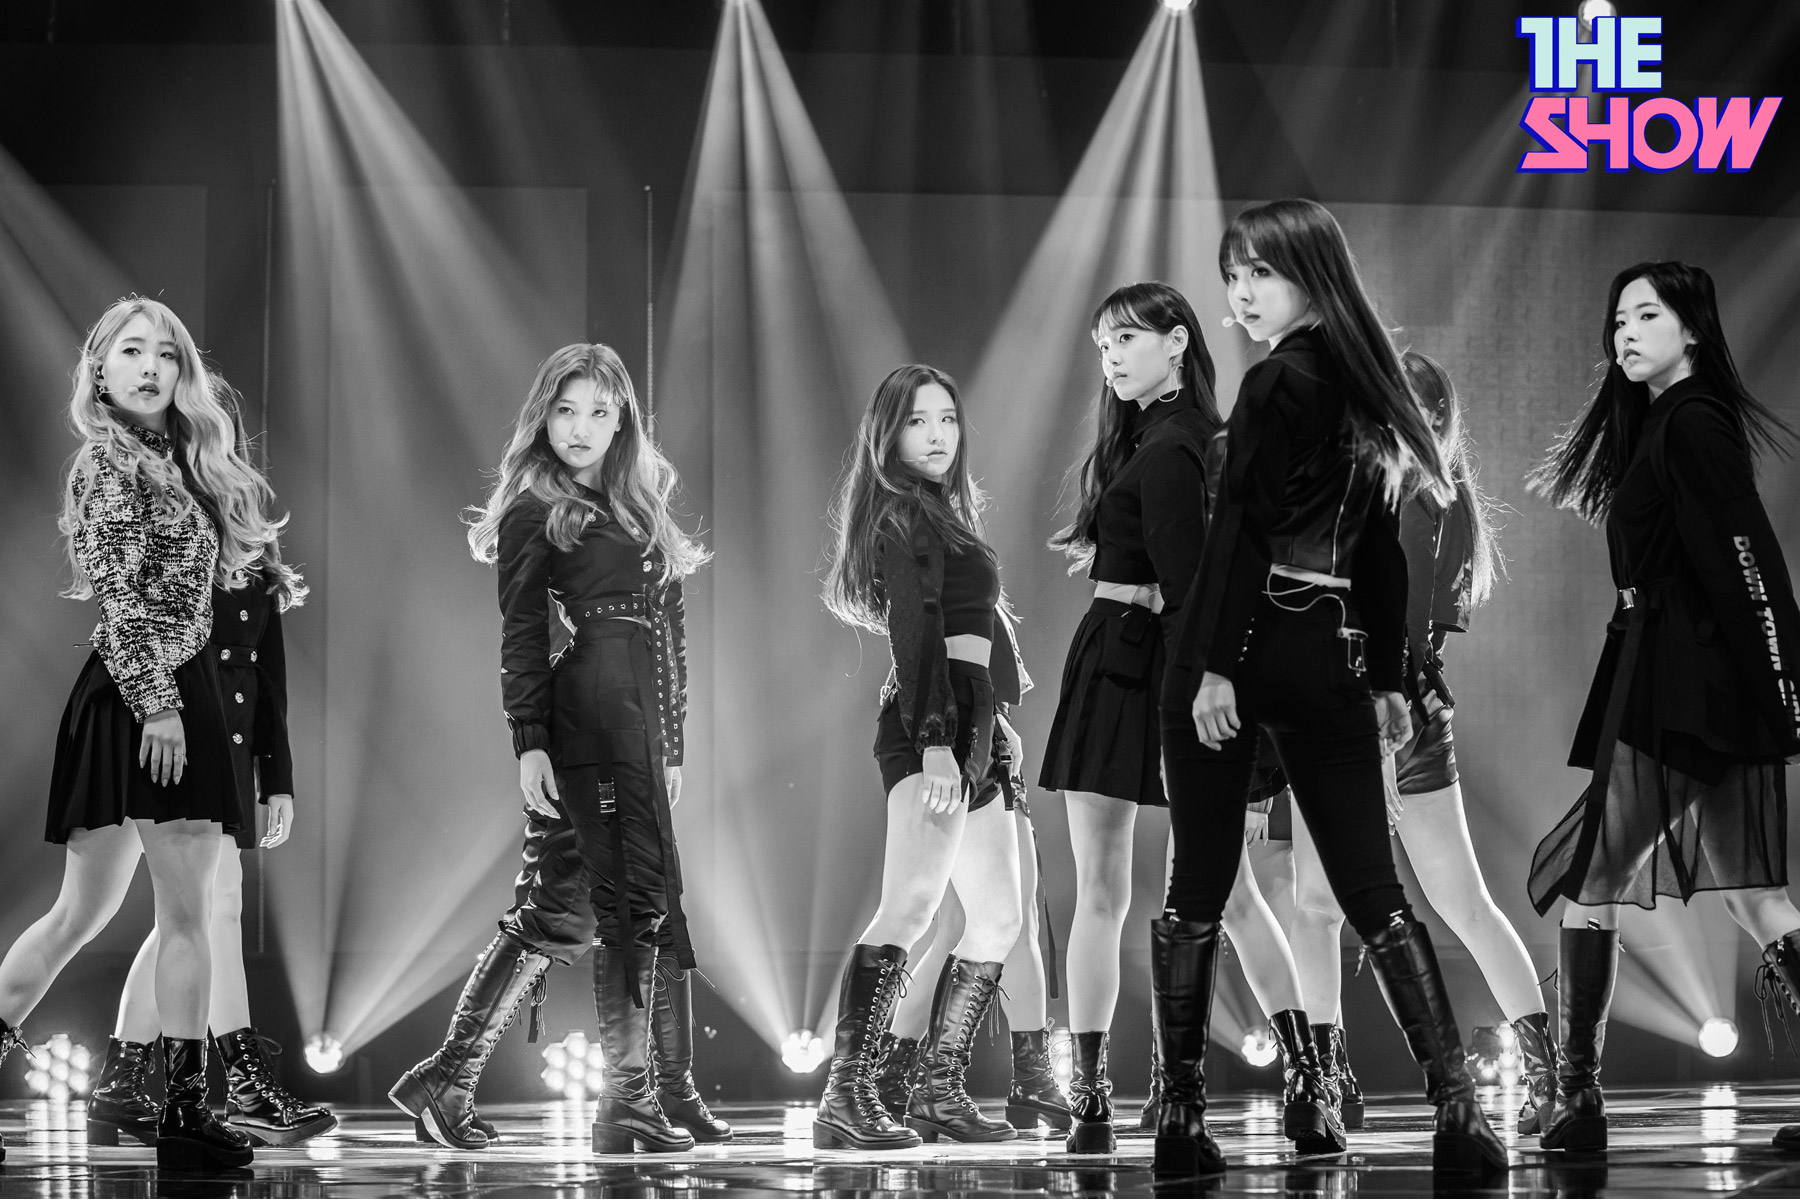 200212 THE SHOW Stage So What LOONA 3.jpg